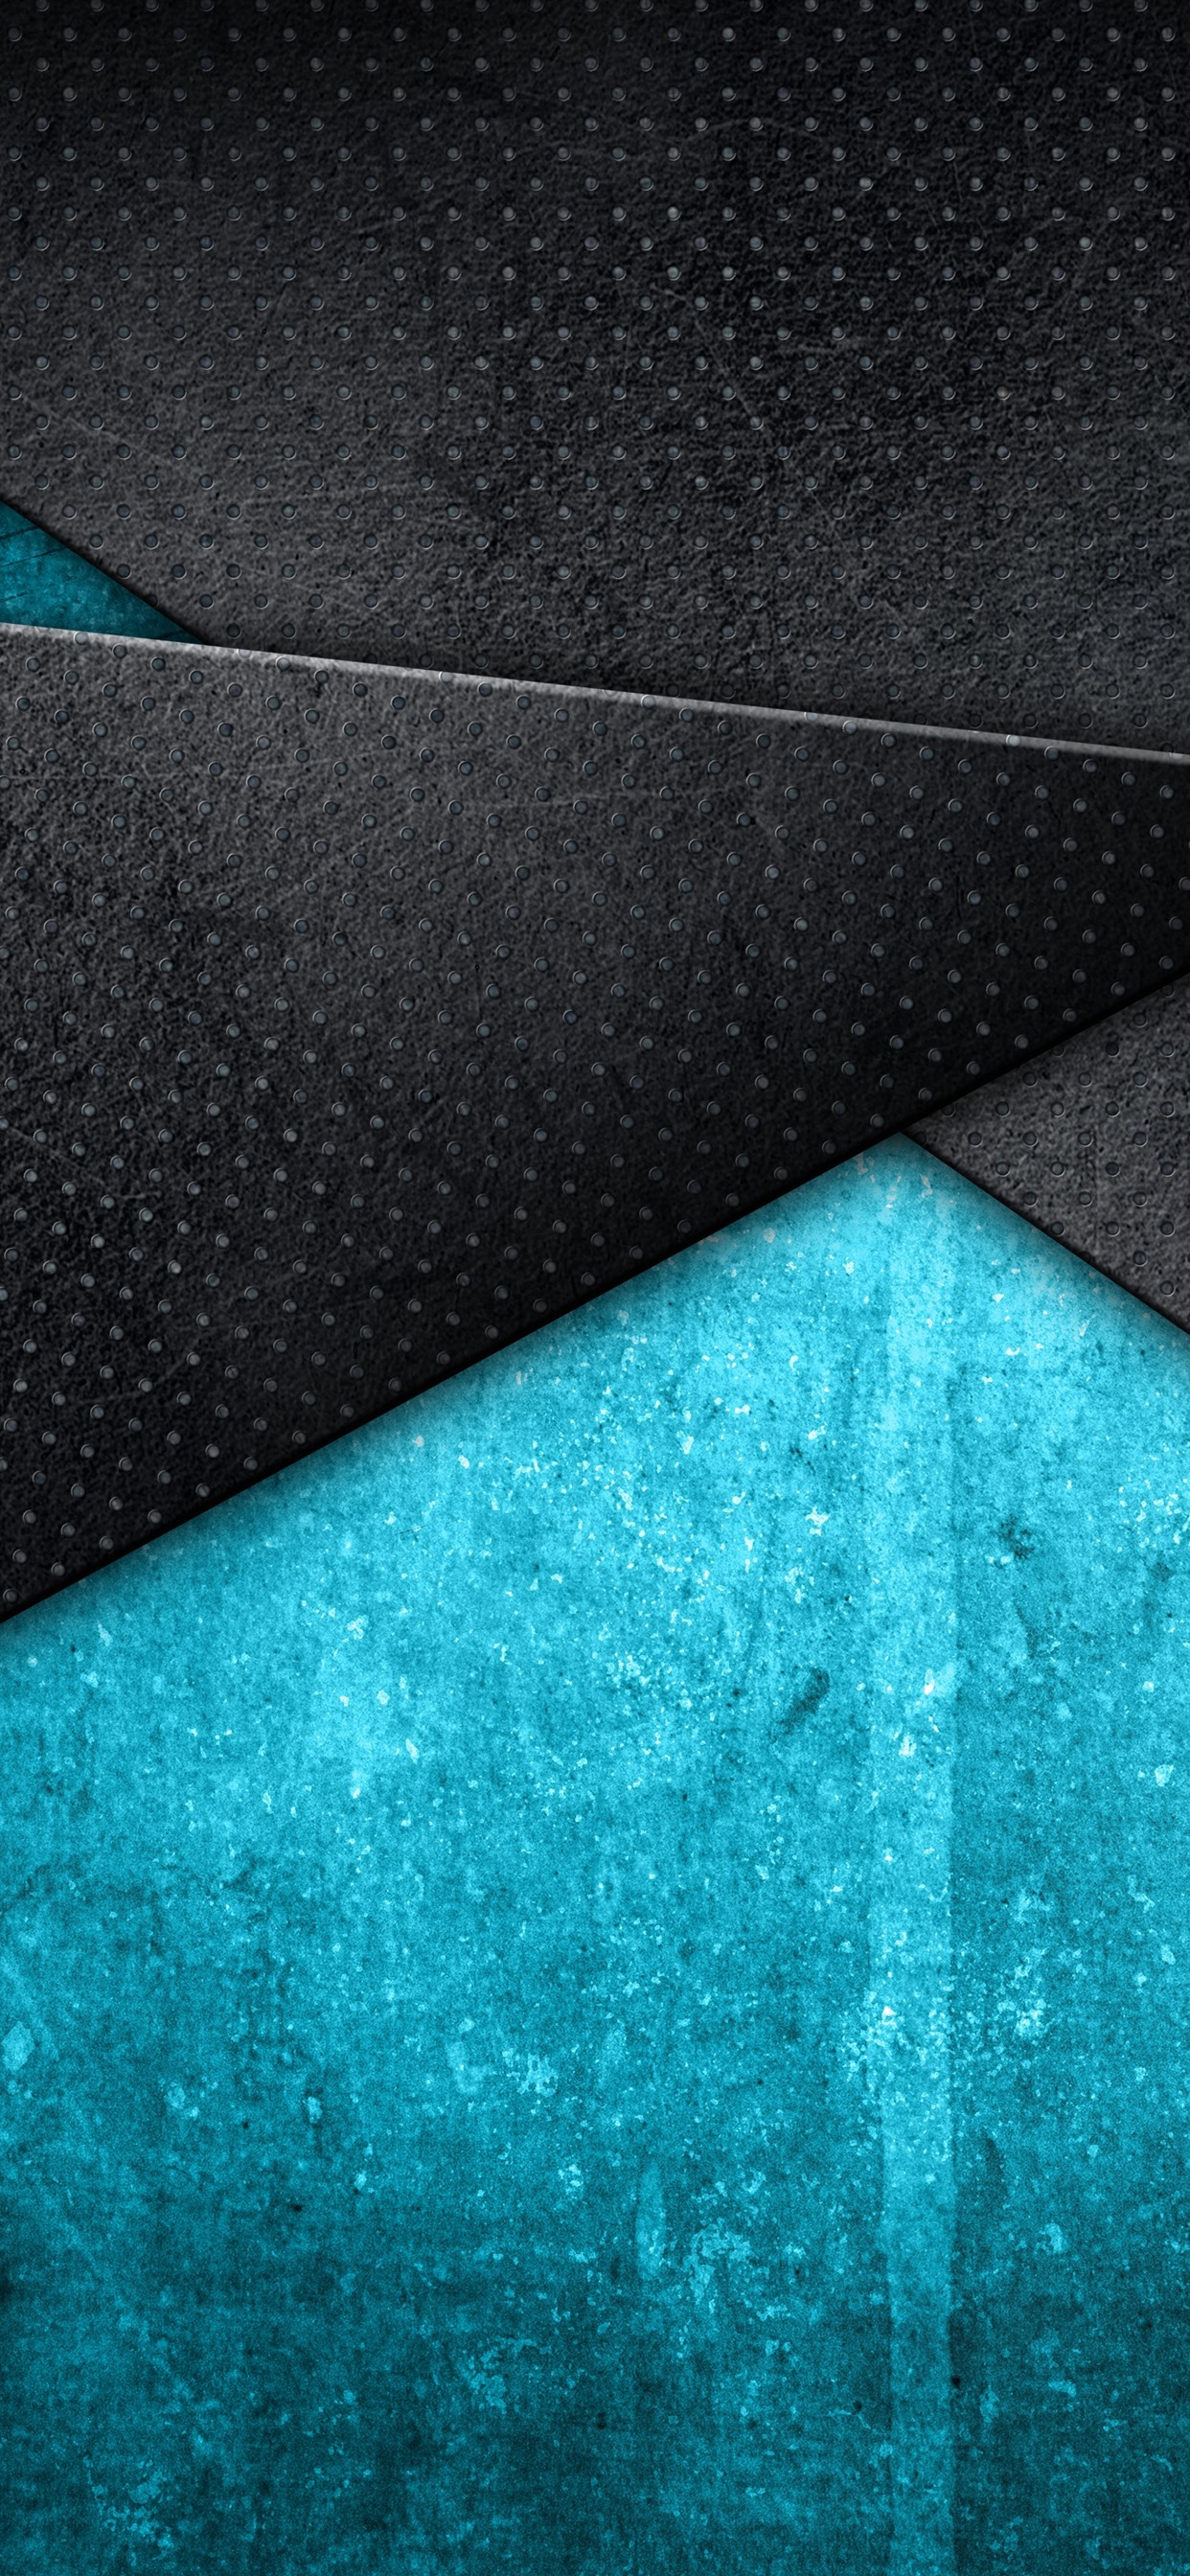 Blue And Black Background Texture Design Picture 1242x2688